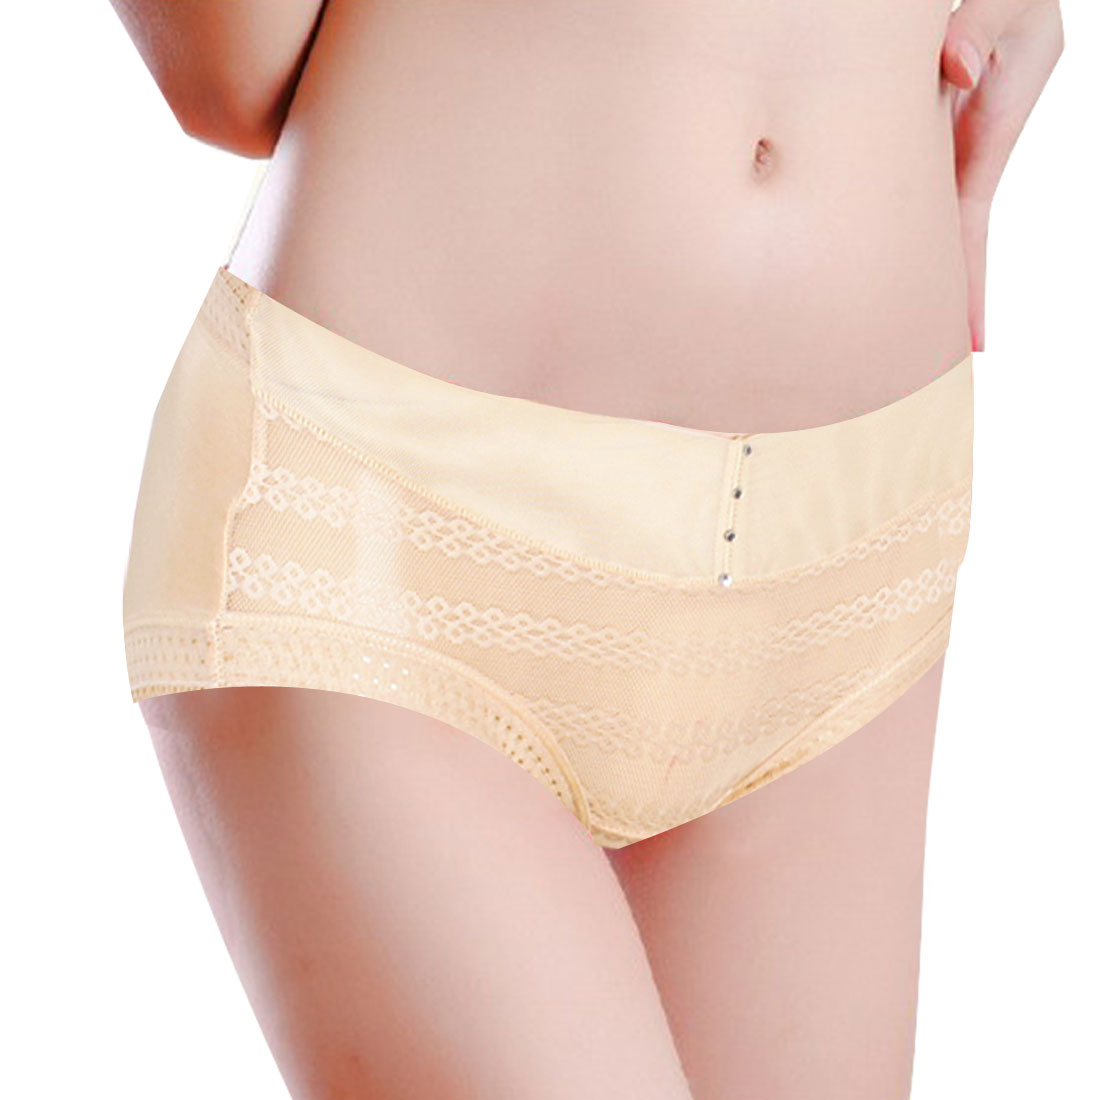 Woman Stretch Waist Laced Brim Underpants Briefs Panties Beige XS